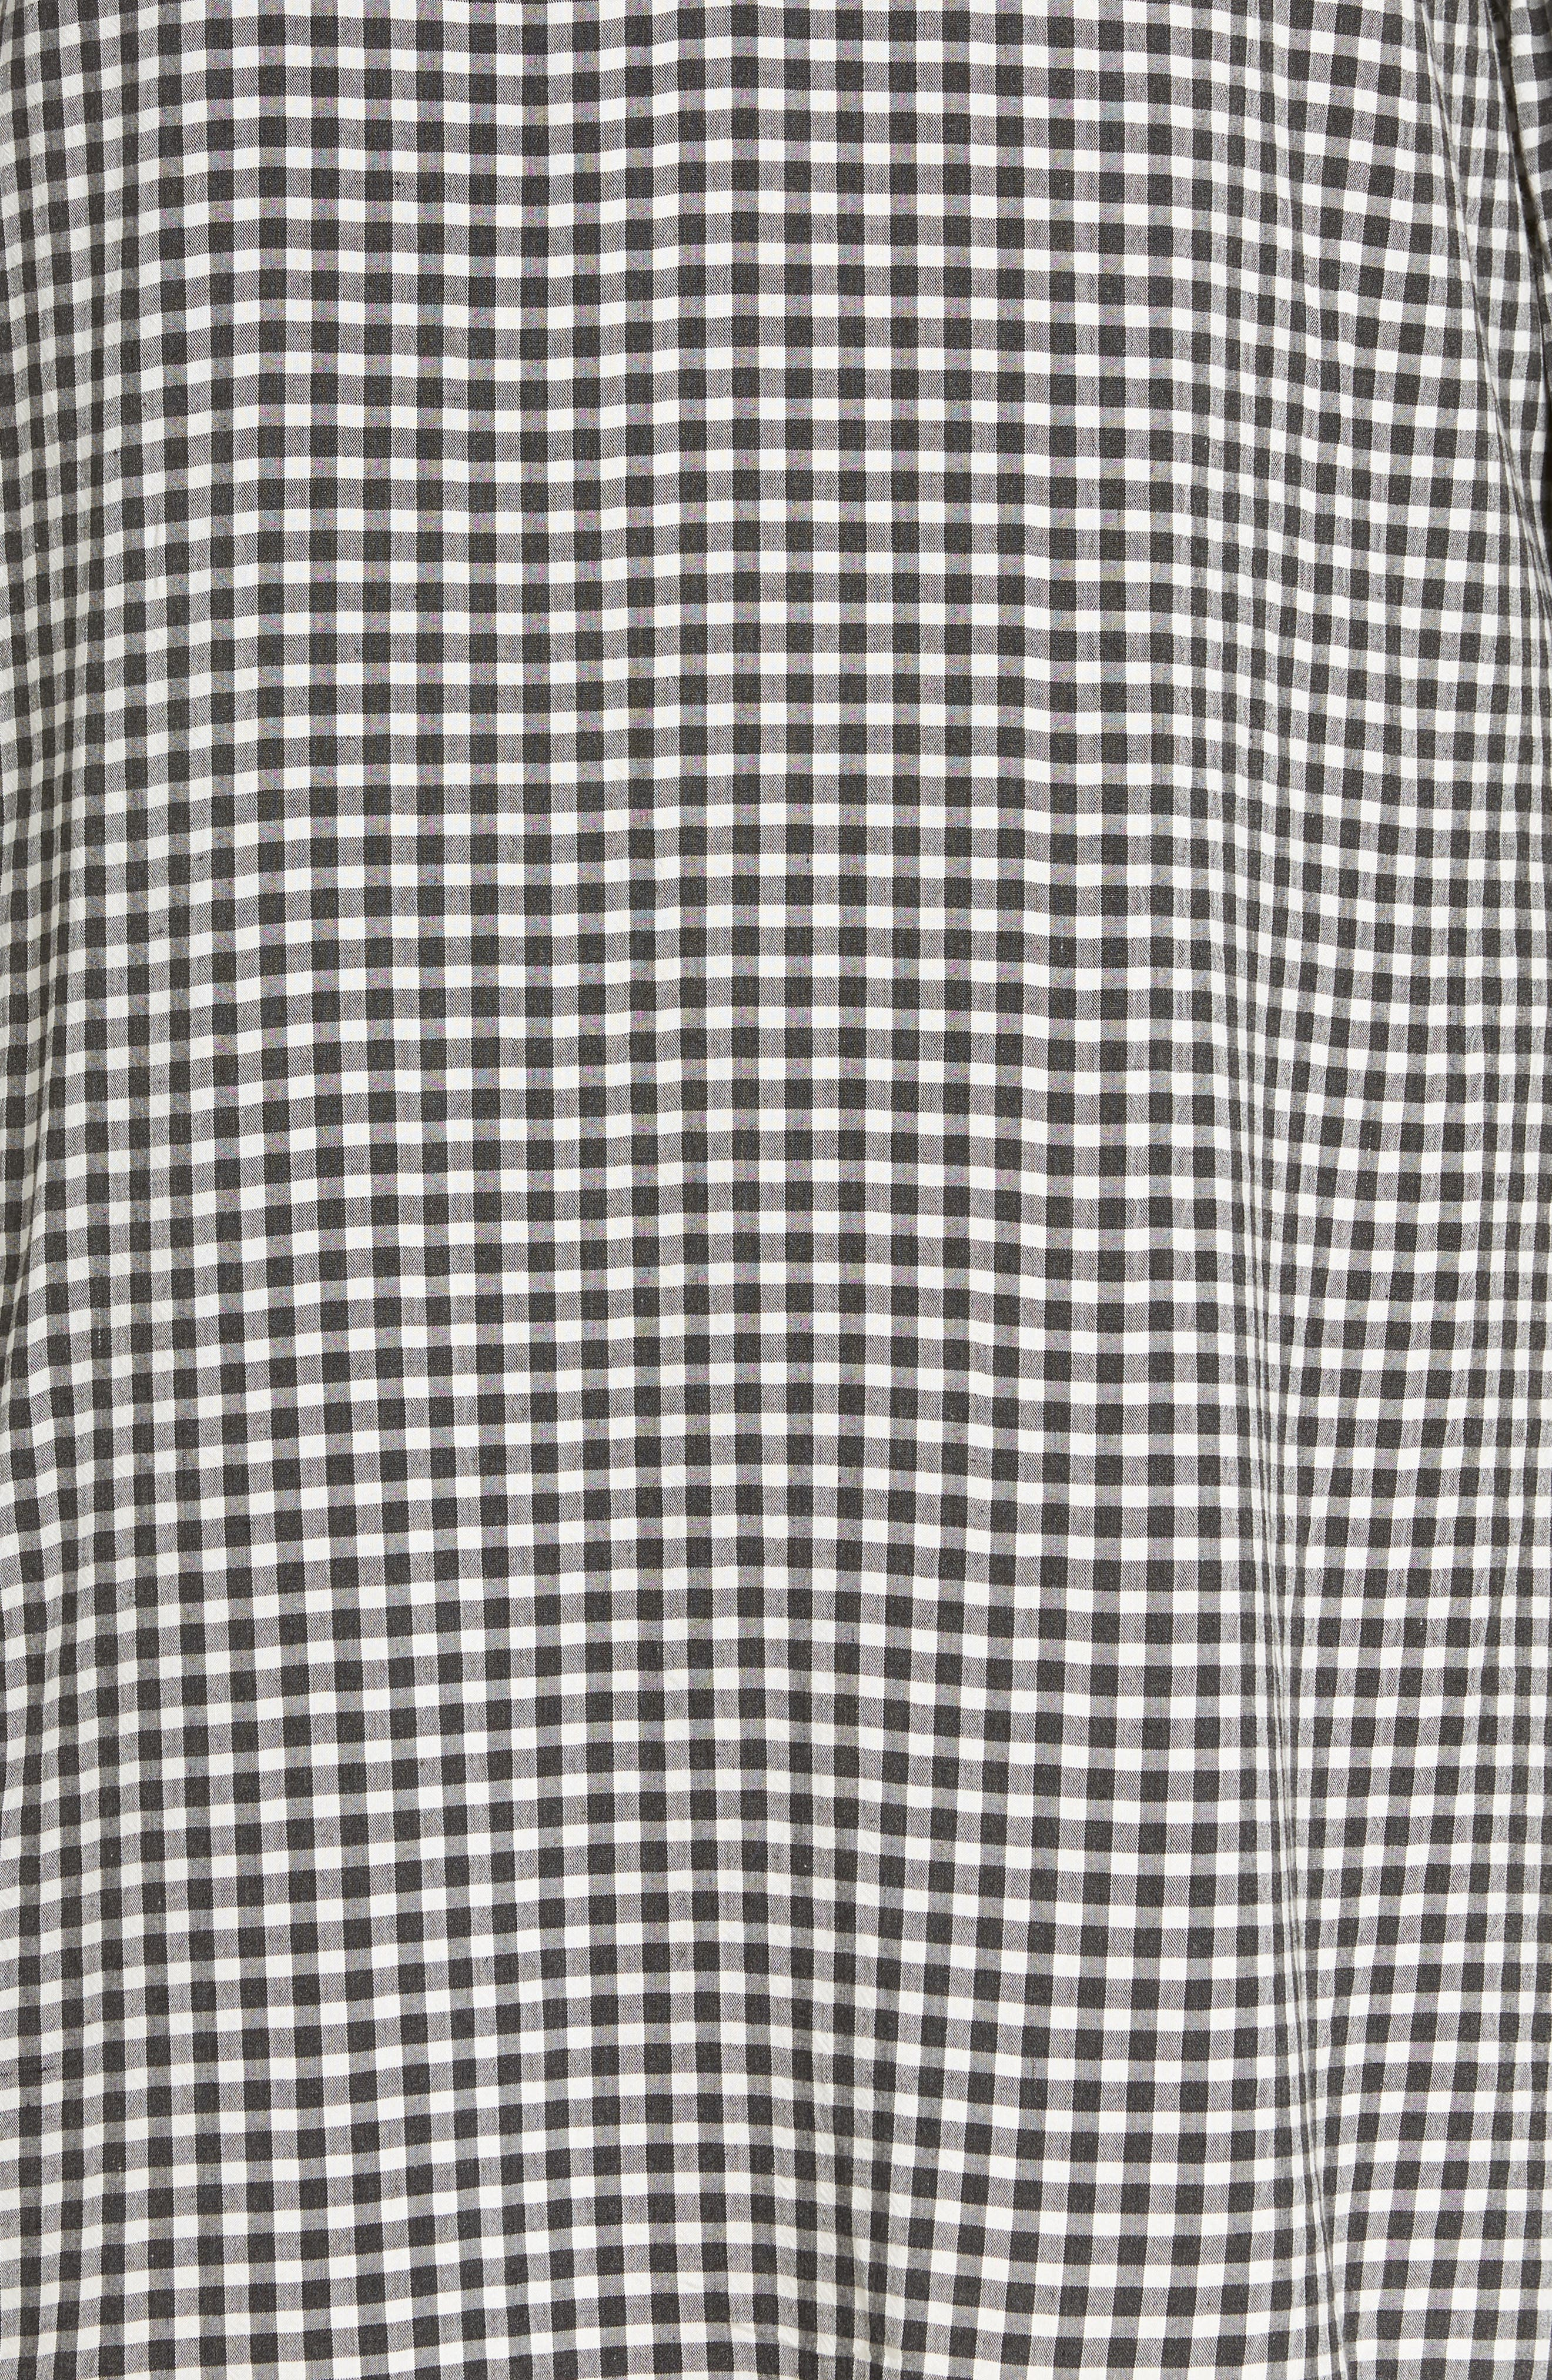 Embroidered Puff Sleeve Gingham Shift Dress,                             Alternate thumbnail 6, color,                             001